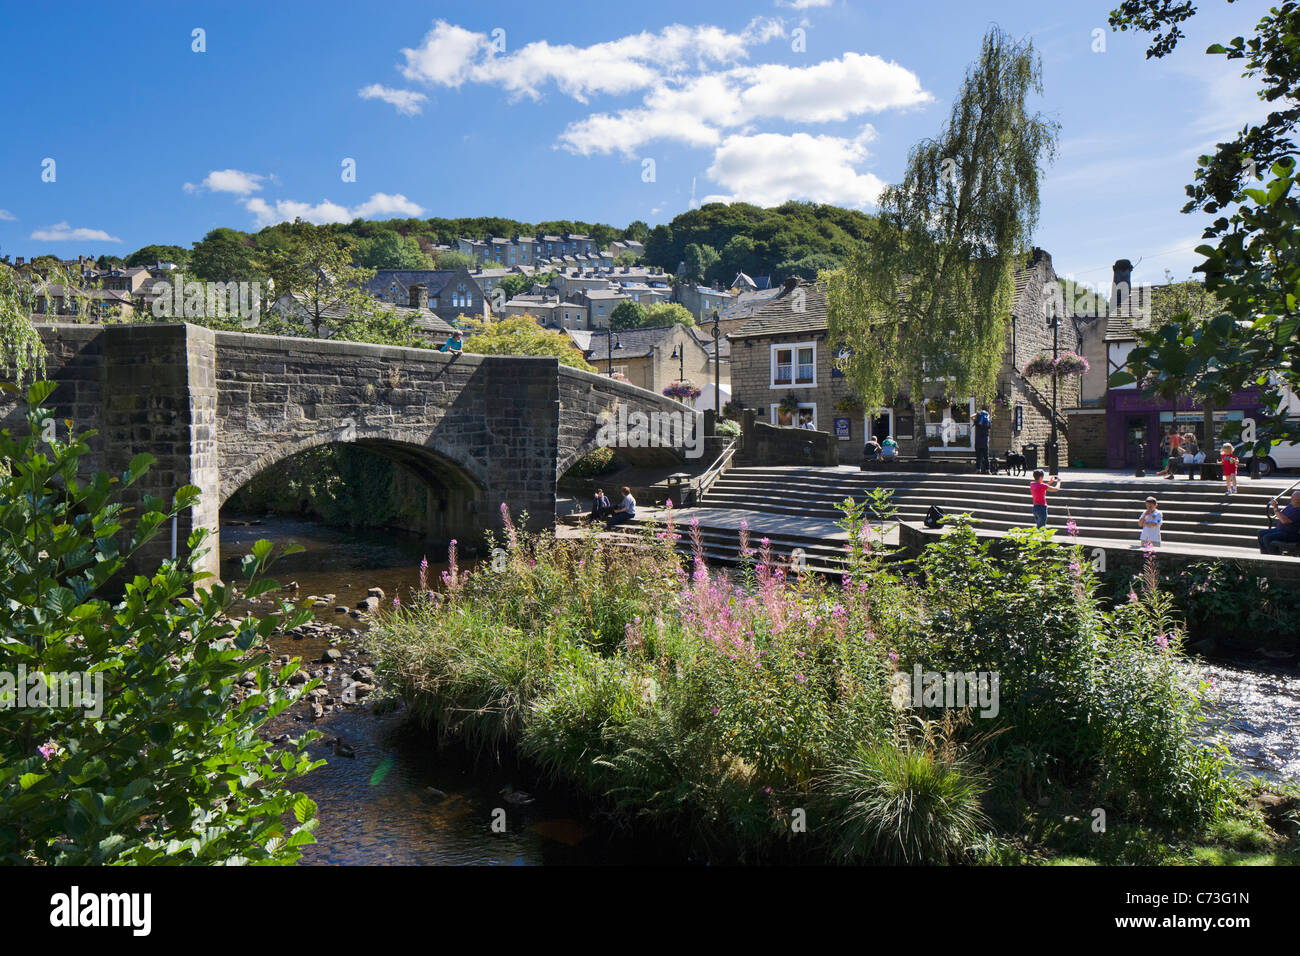 Bridge over a stream in the town centre, Hebden Bridge, Calder Valley, West Yorkshire, England, United Kingdom - Stock Image